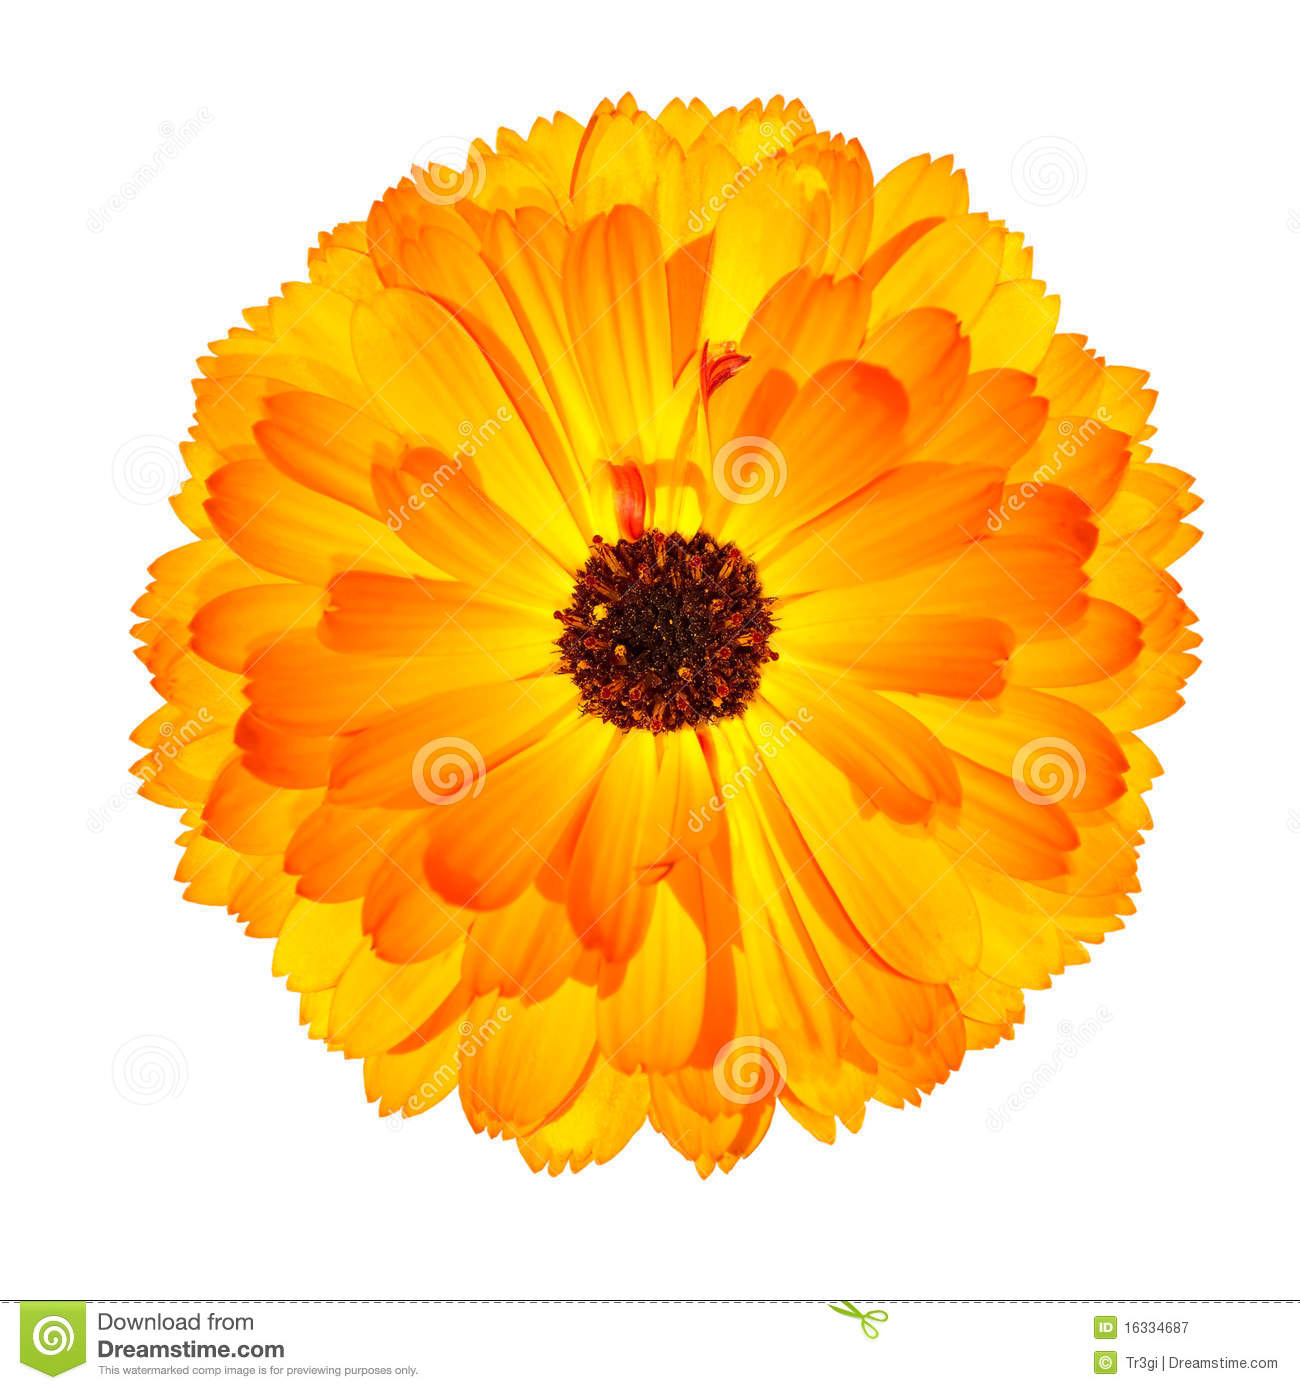 Yellow Calendula Officinalis (Pot Marigold) Flower Isolated On.